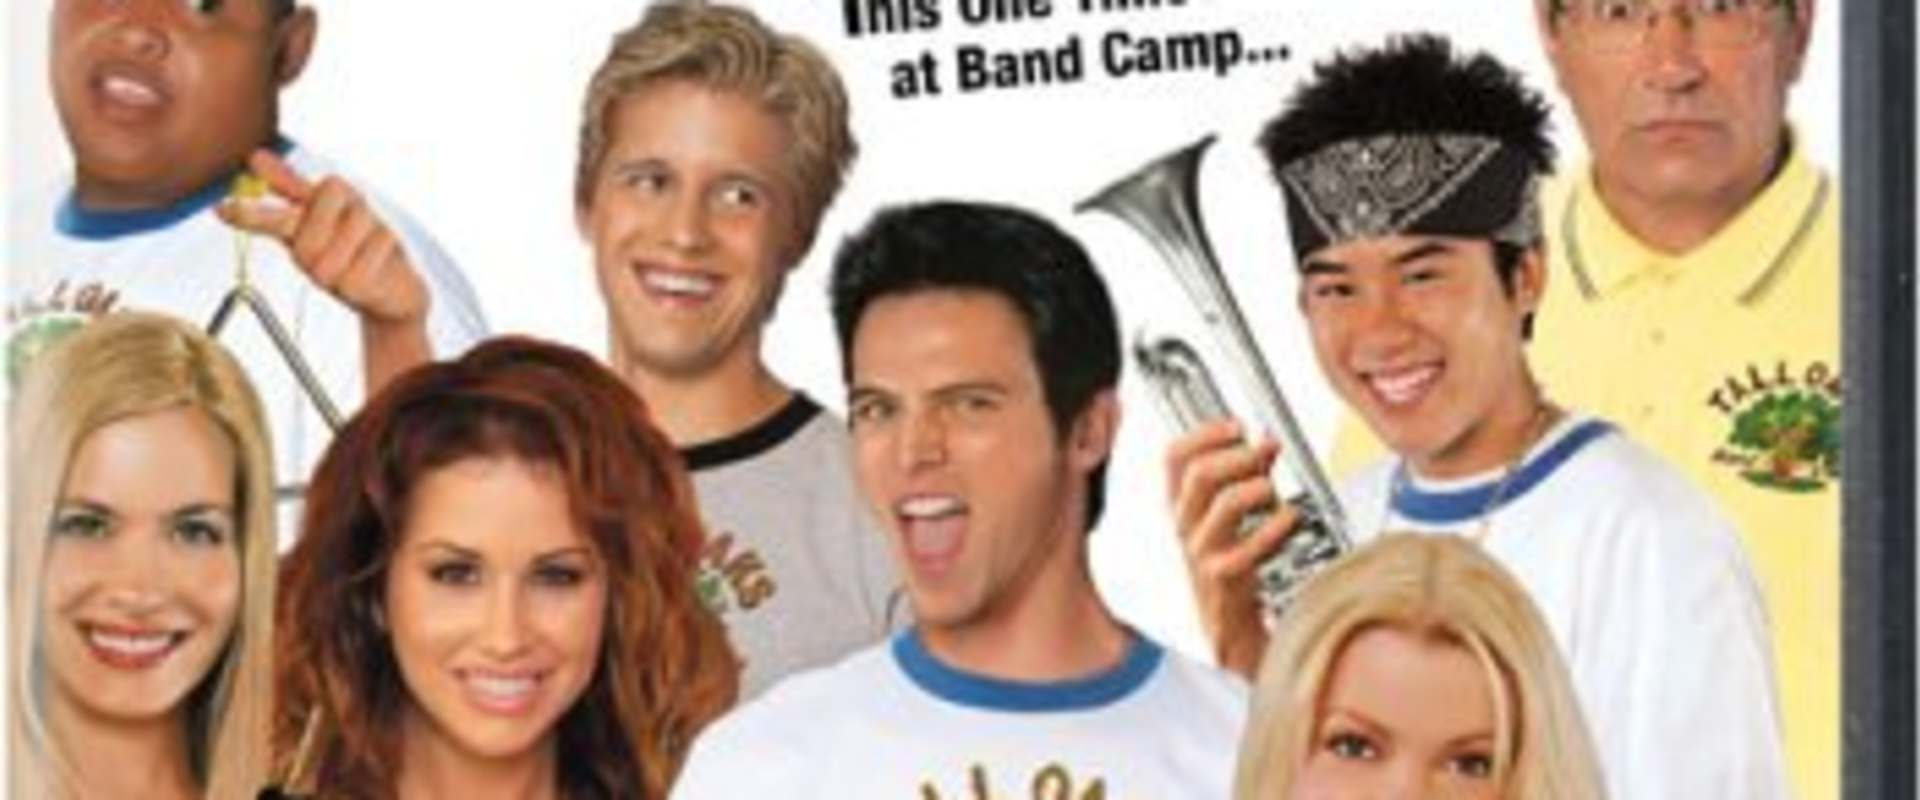 American Pie Presents: Band Camp background 1